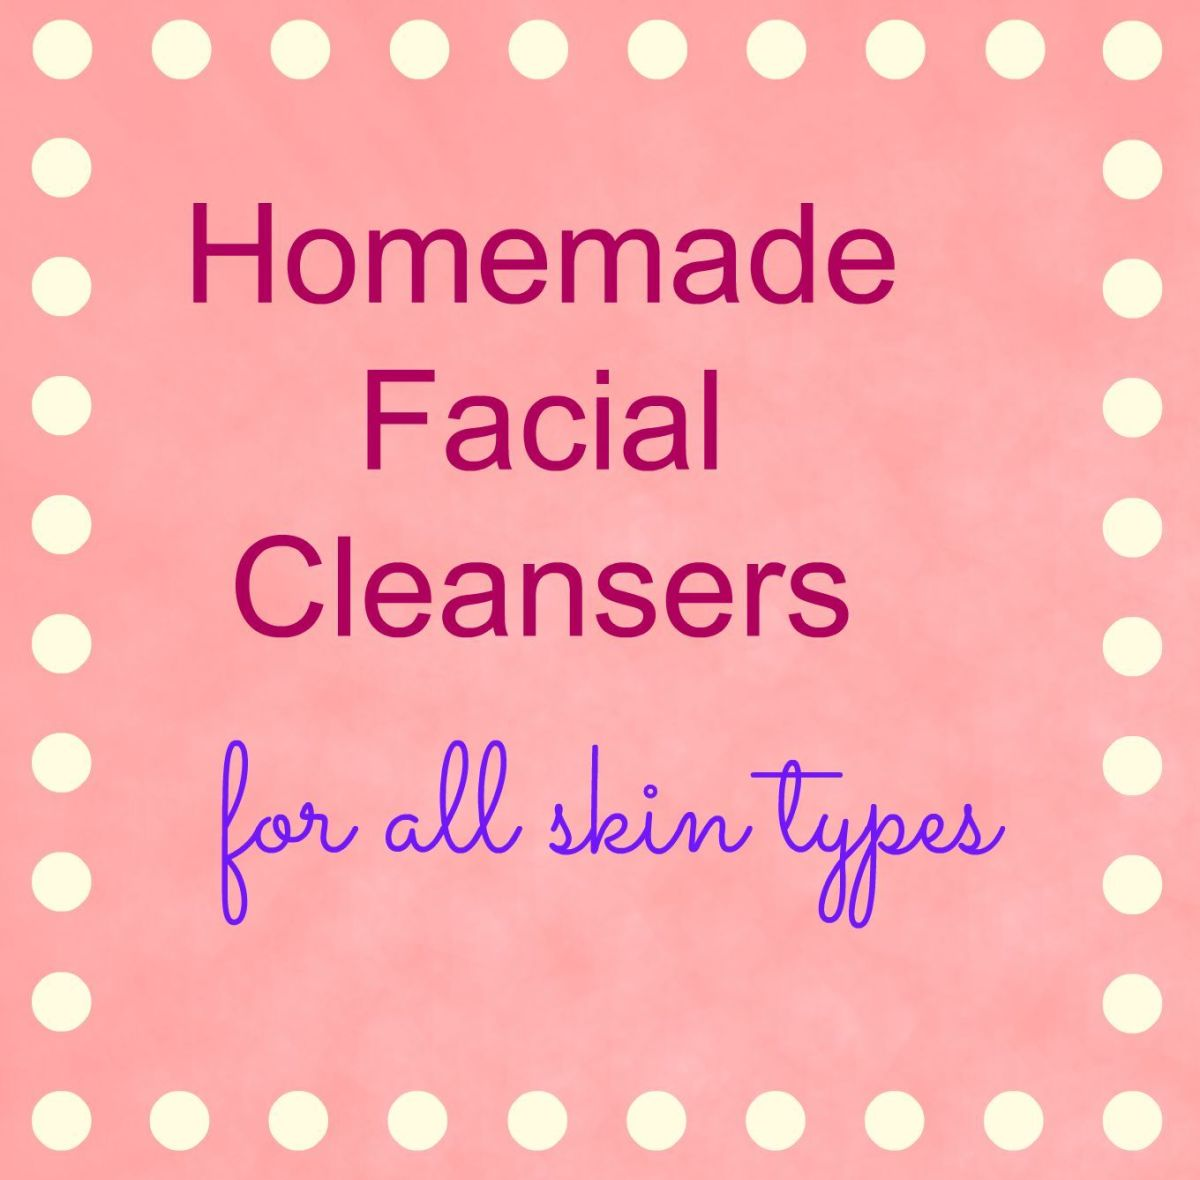 Homemade Facial Cleansers for all skin types